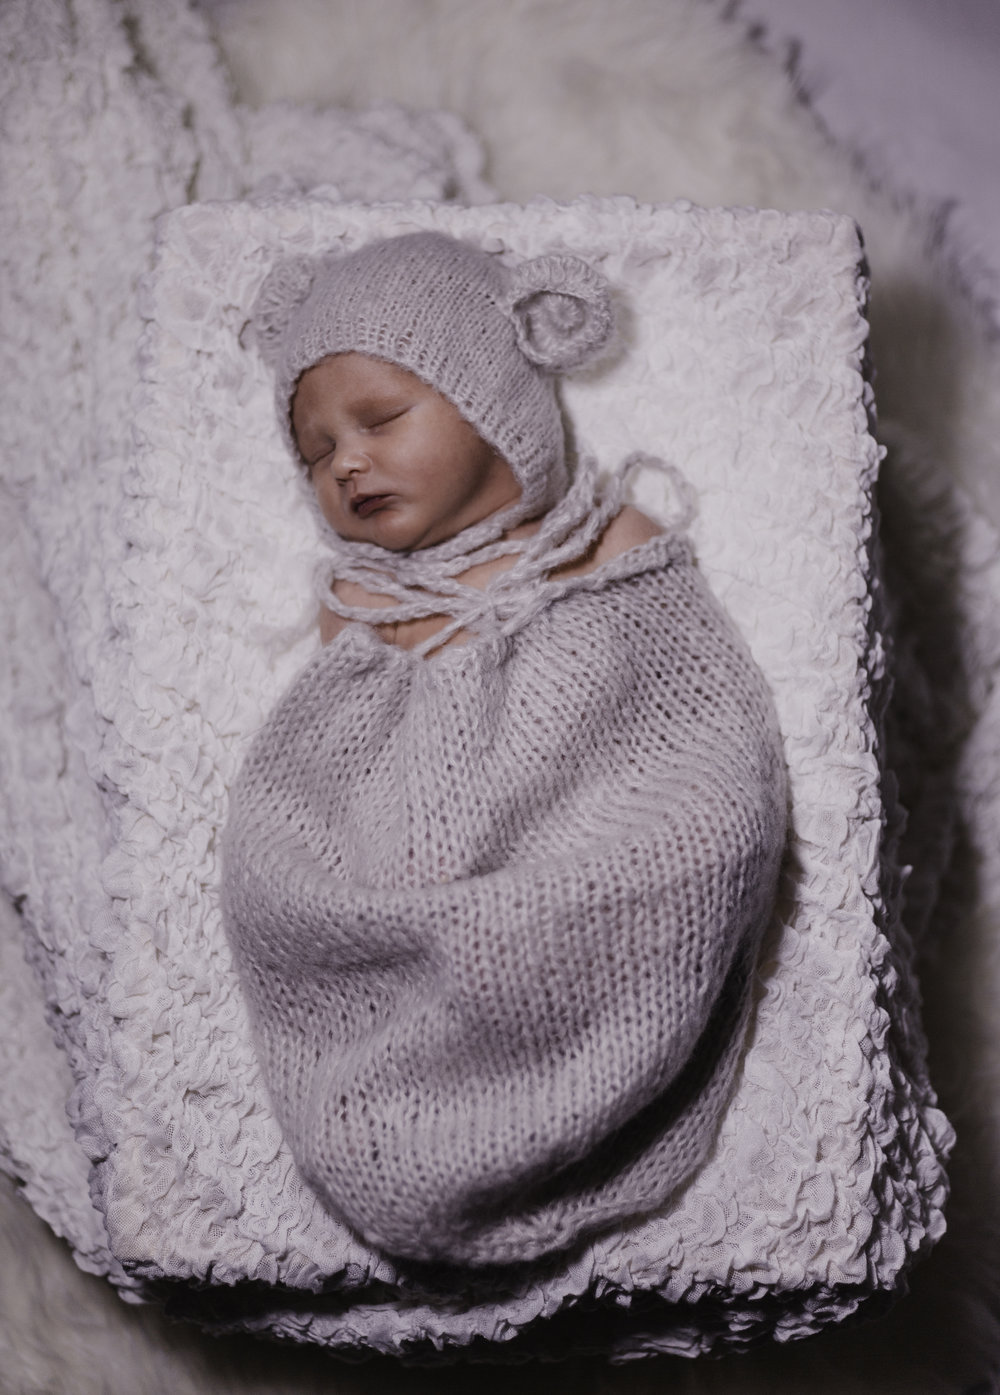 Newborn baby photoshoots - these photoshoots are so very precious to us. Capturing your newborn baby in the first few weeks is the best time, you then have the most beautiful photographs to look back on for a lifetime.